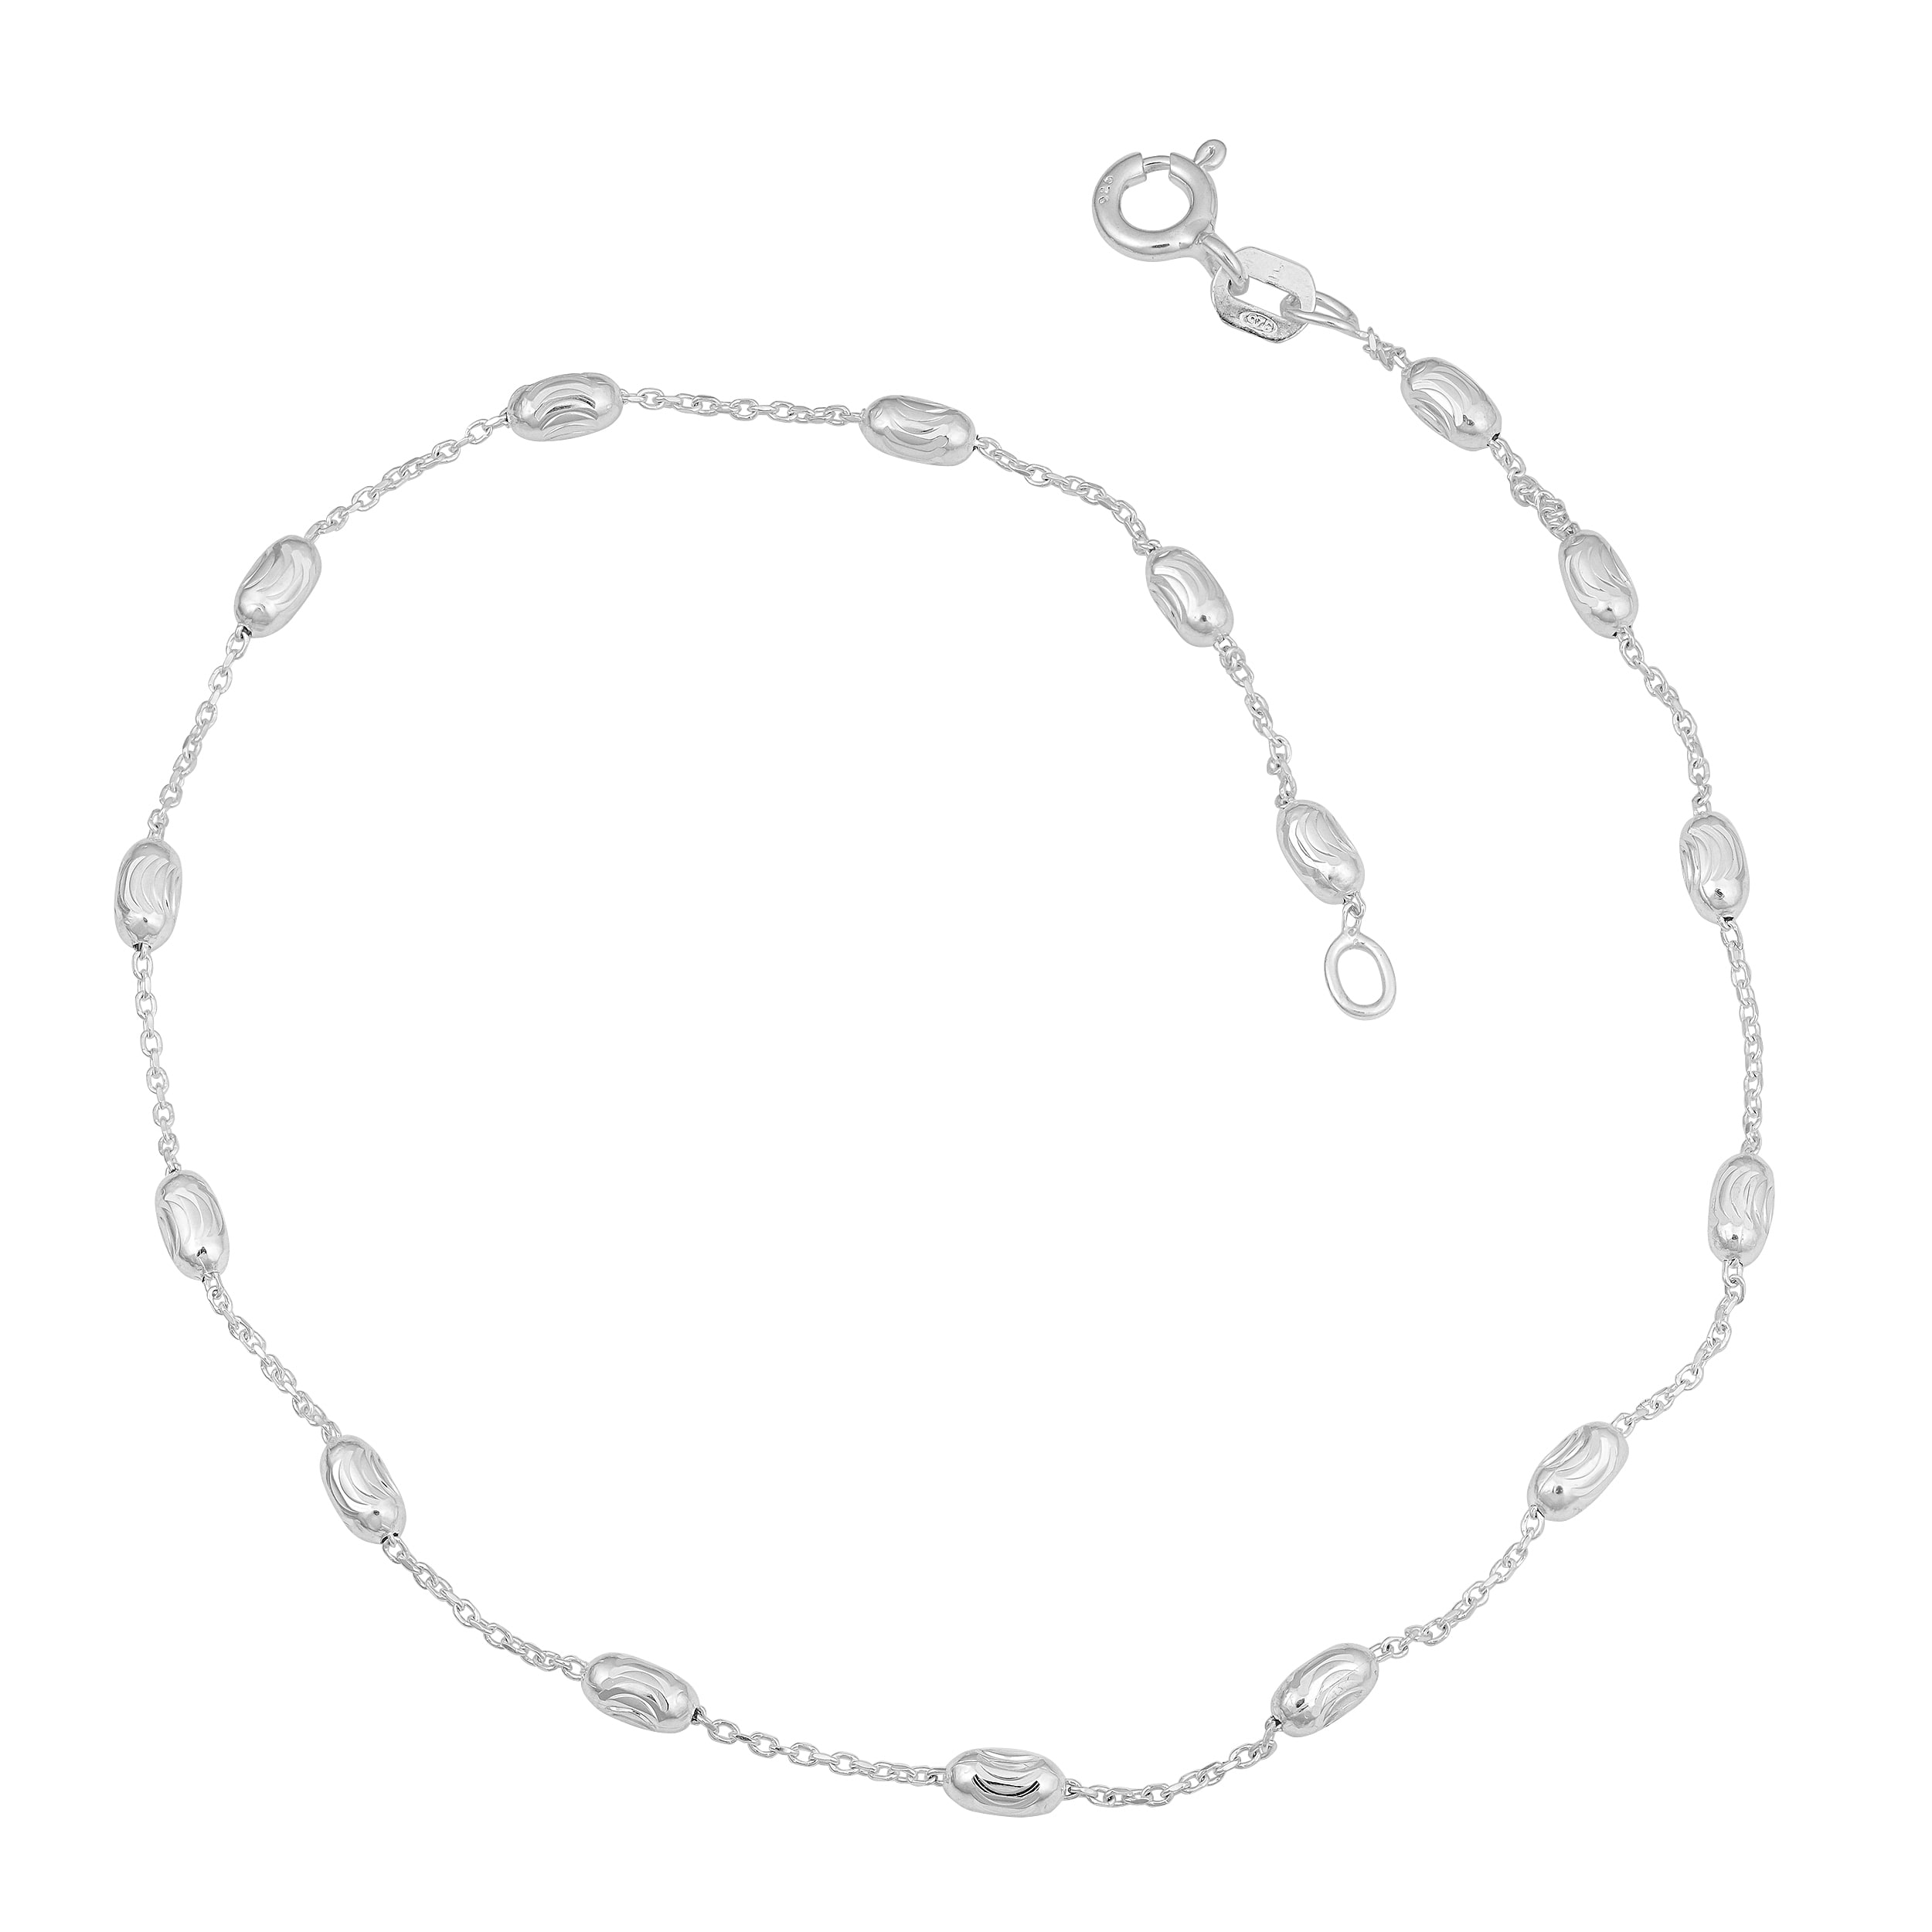 unique anklet ssa shell sterling bracelet product buy charm silver design